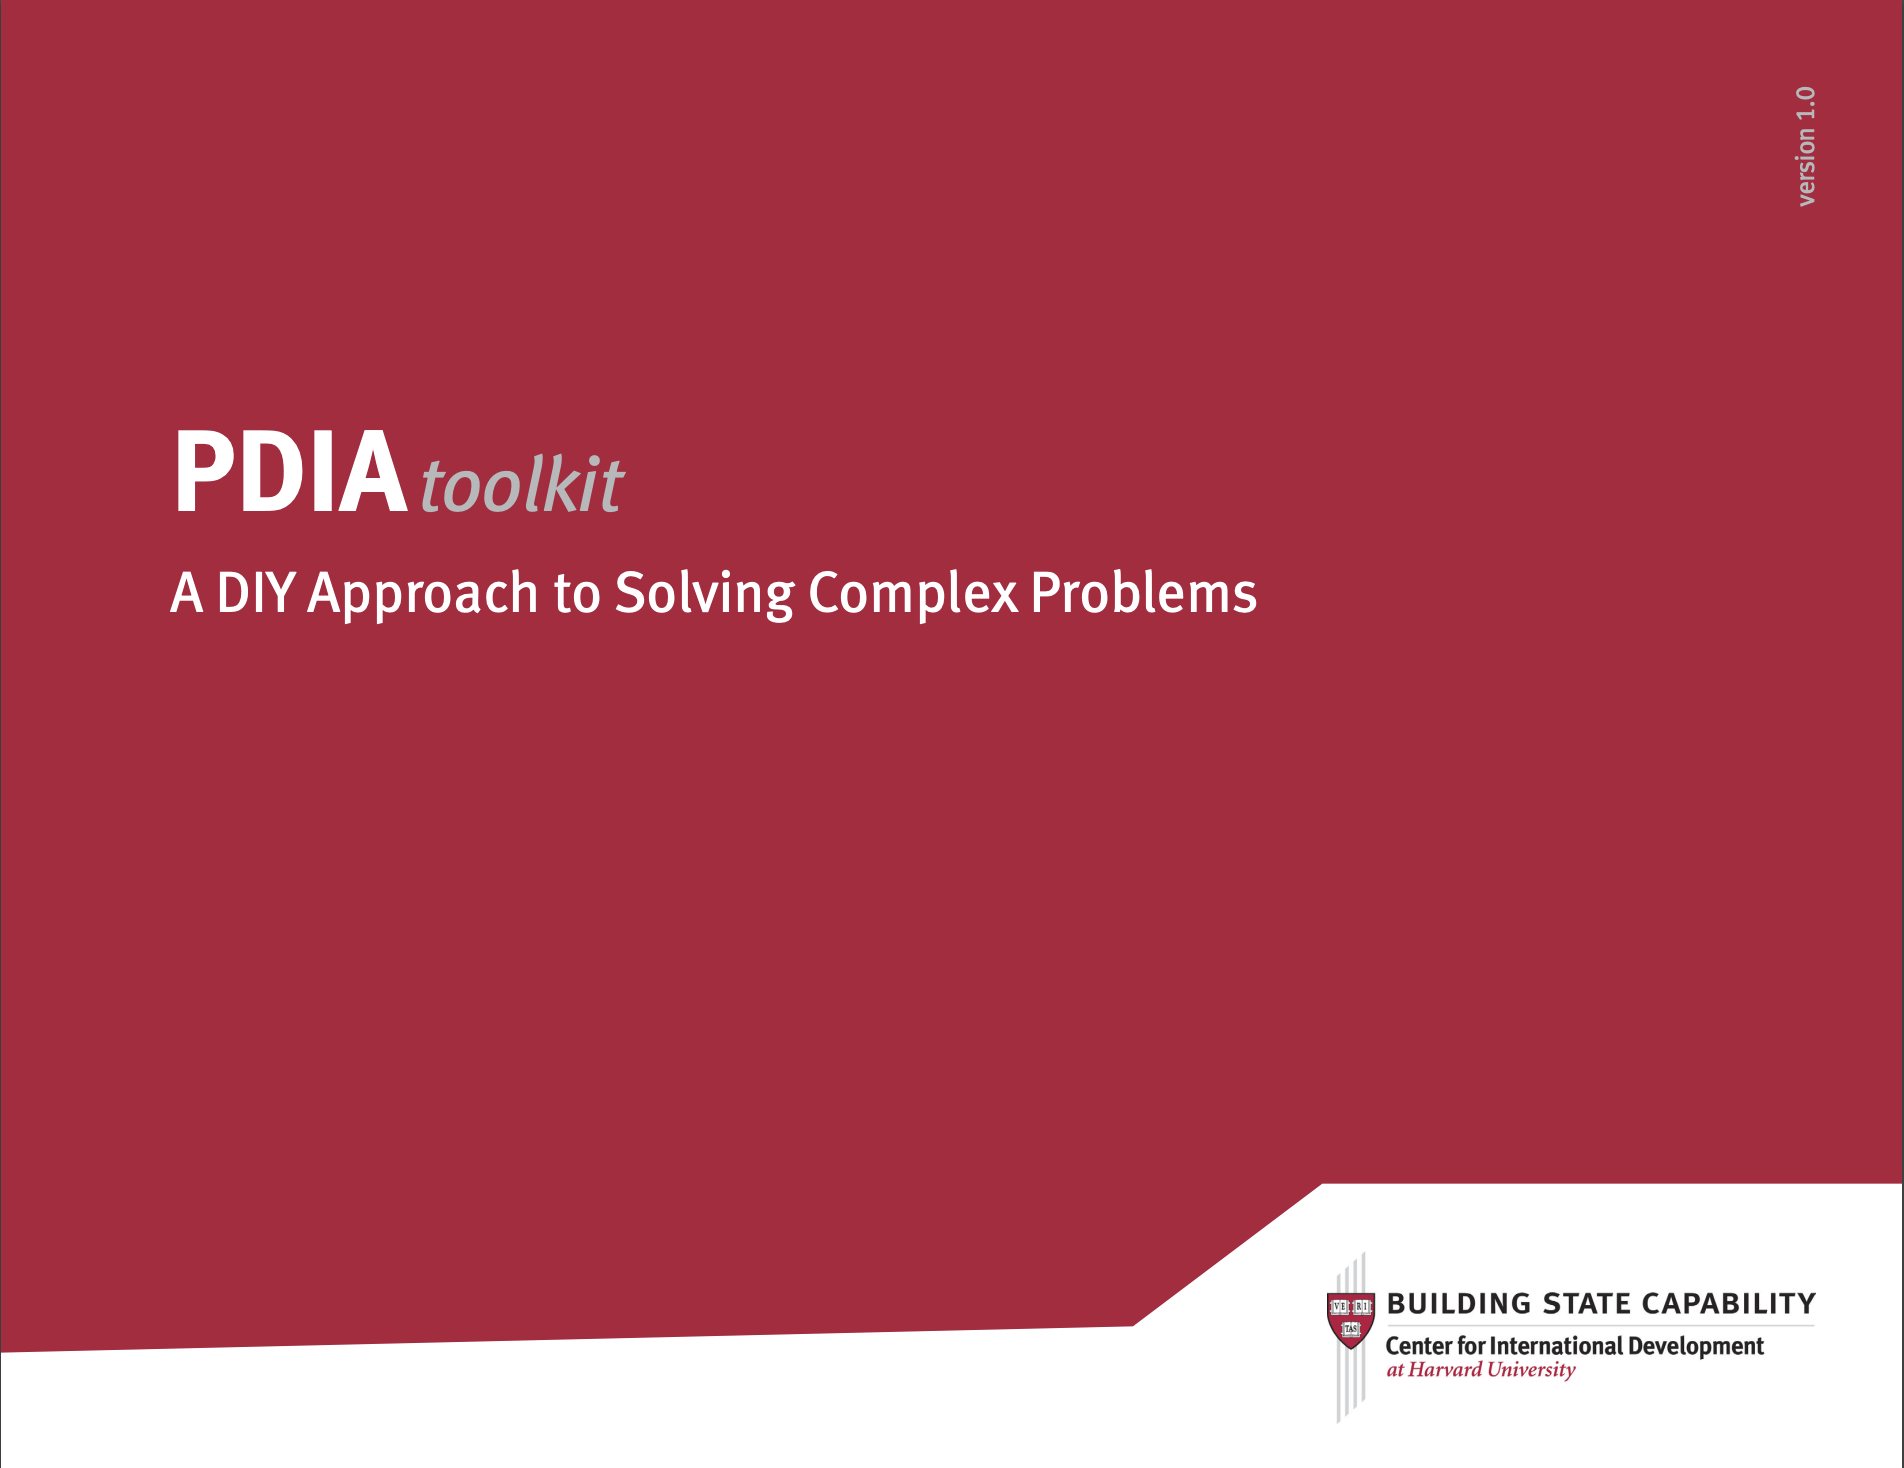 bsc-pdia-toolkit-cover